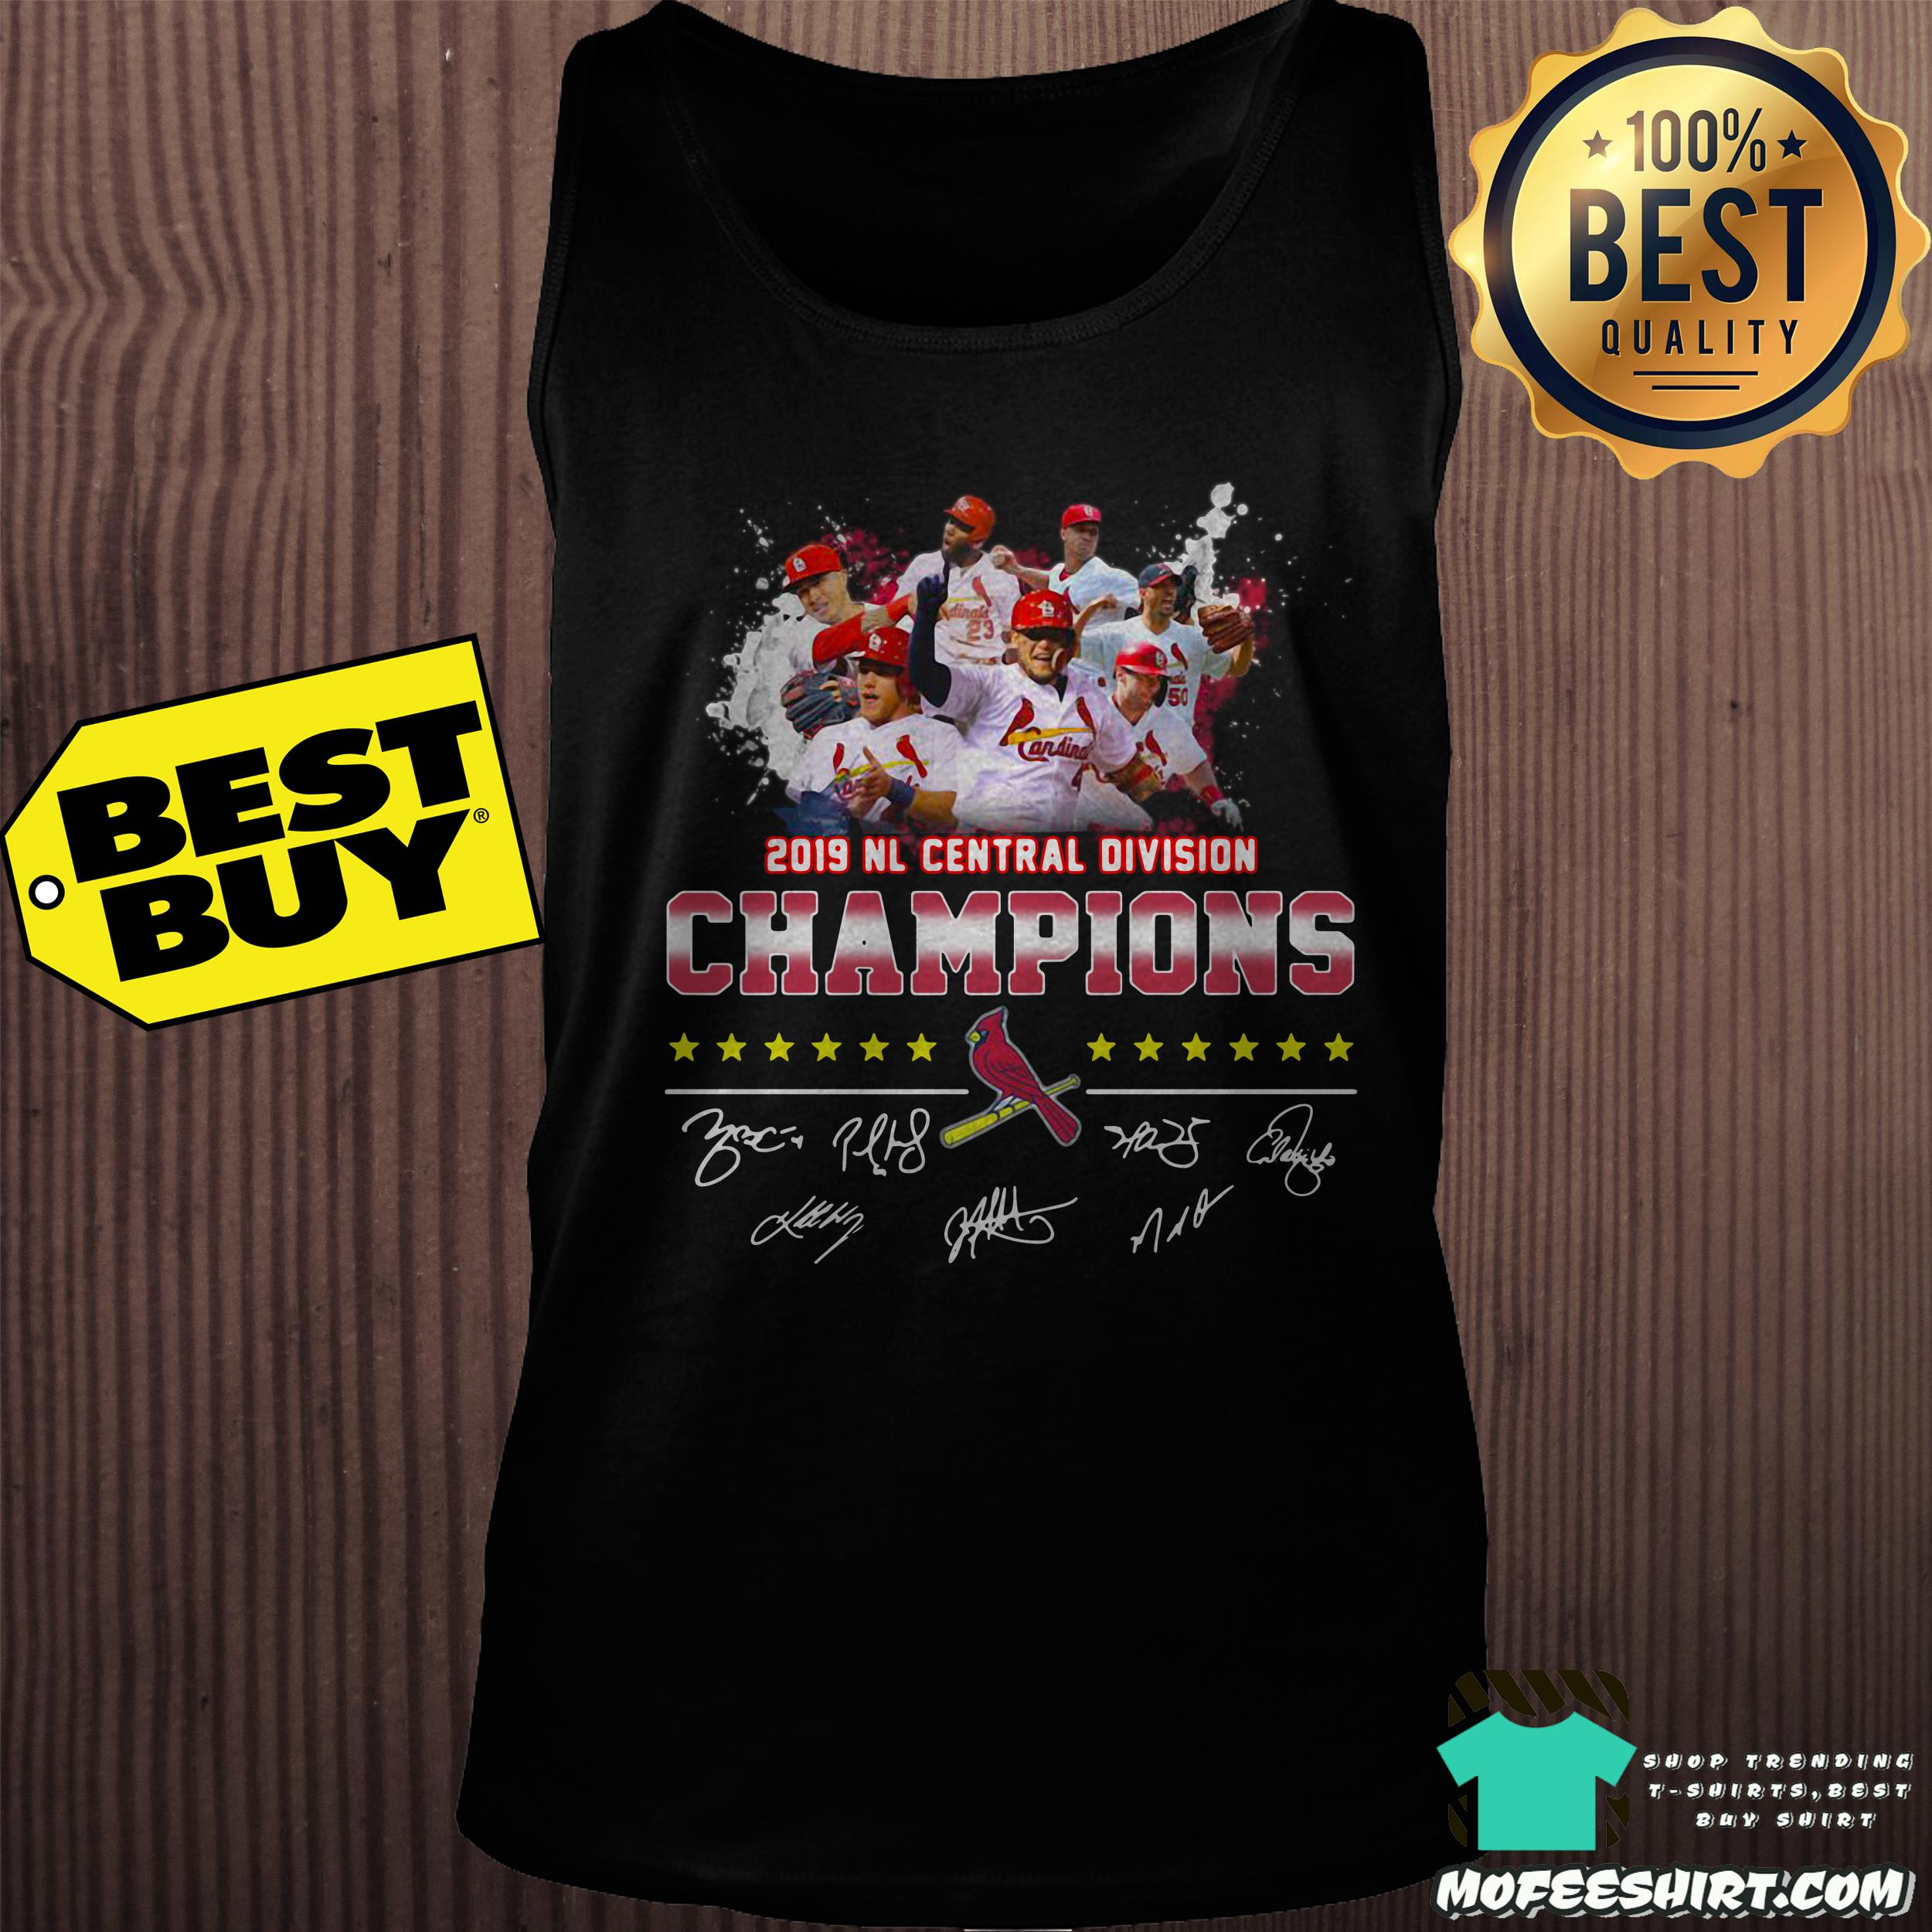 2019 nl central division champions st louis cardinals signatures tank top - 2019 NL Central Division Champions St Louis Cardinals signatures shirt